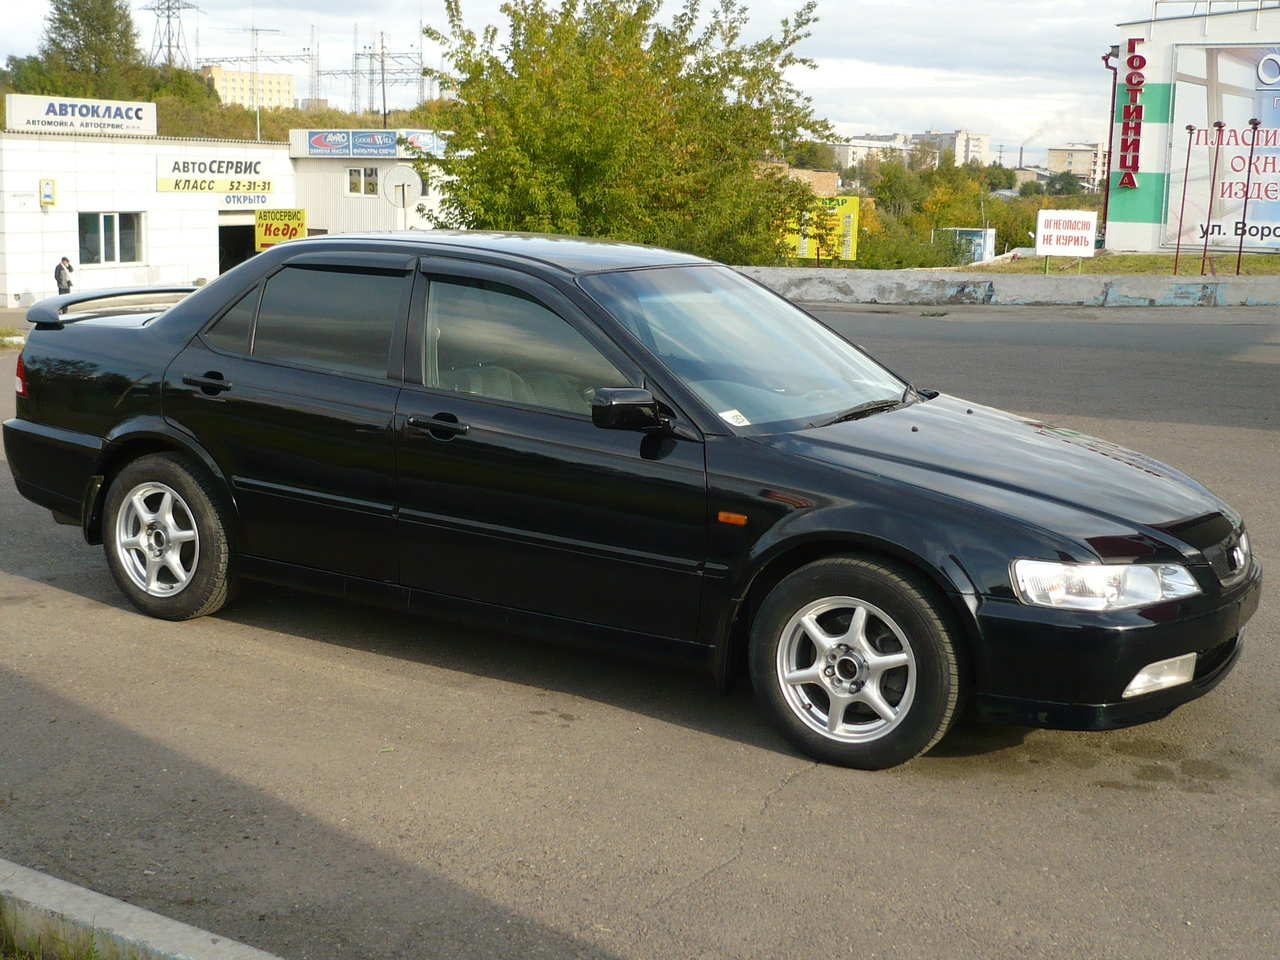 Used 2002 Honda Accord partia nowości bet at home bet at home tarda en pagar